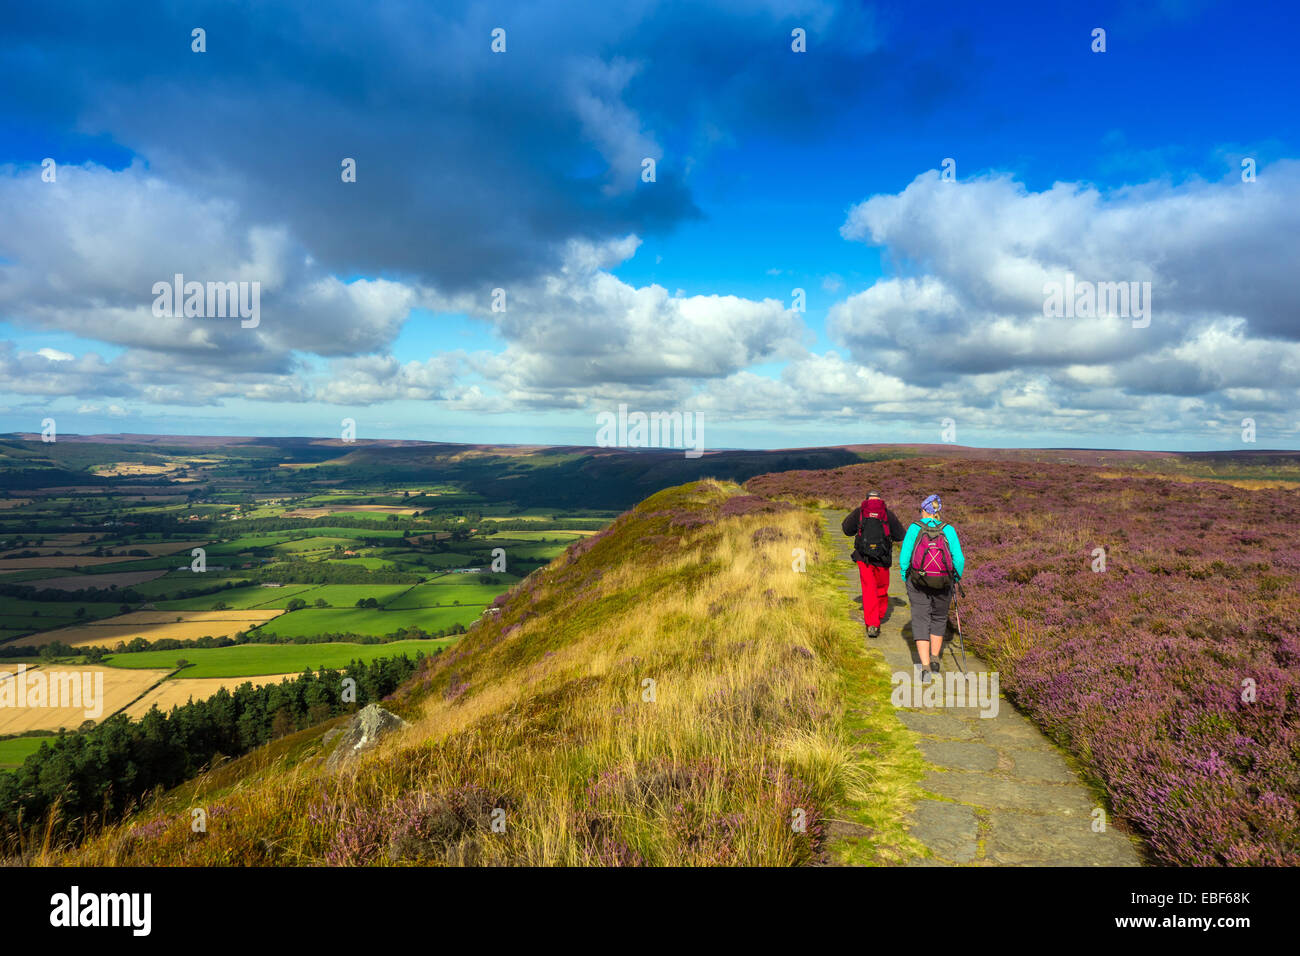 Walkers on Cleveland Way, North York Moors - Stock Image